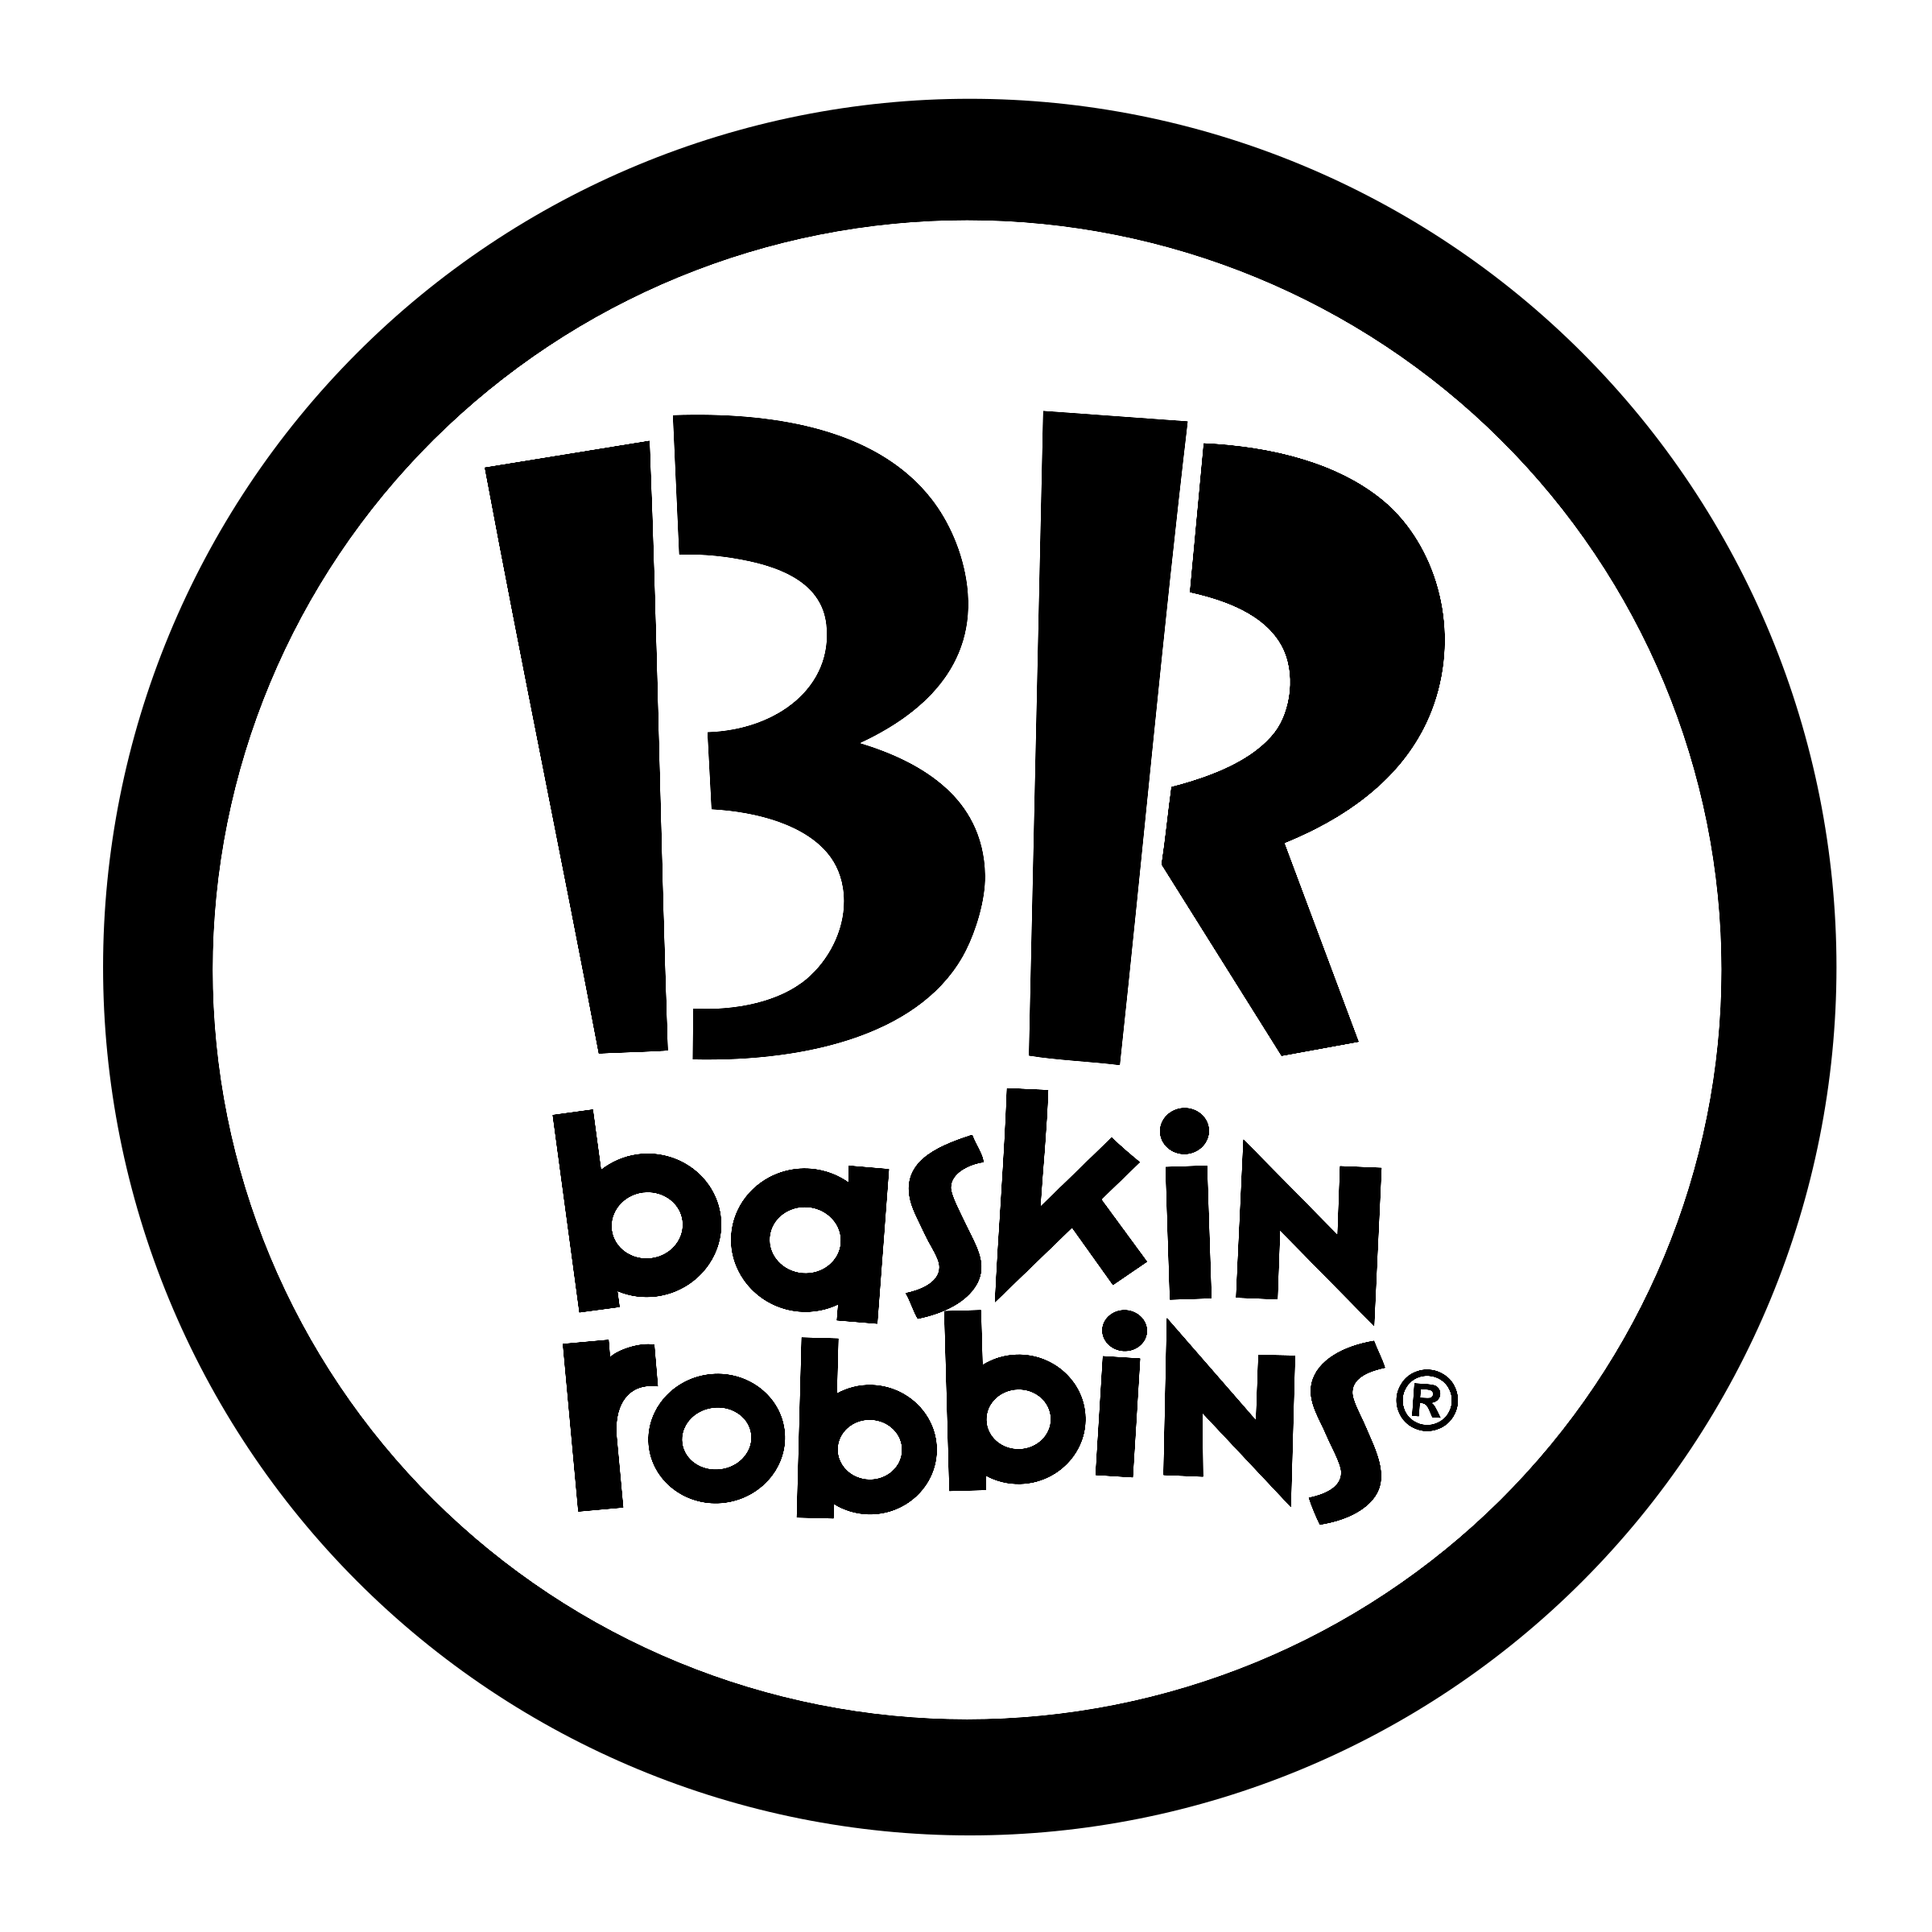 Baskin-Robbins Logo - Baskin Robbins Logo PNG Transparent & SVG Vector - Freebie Supply